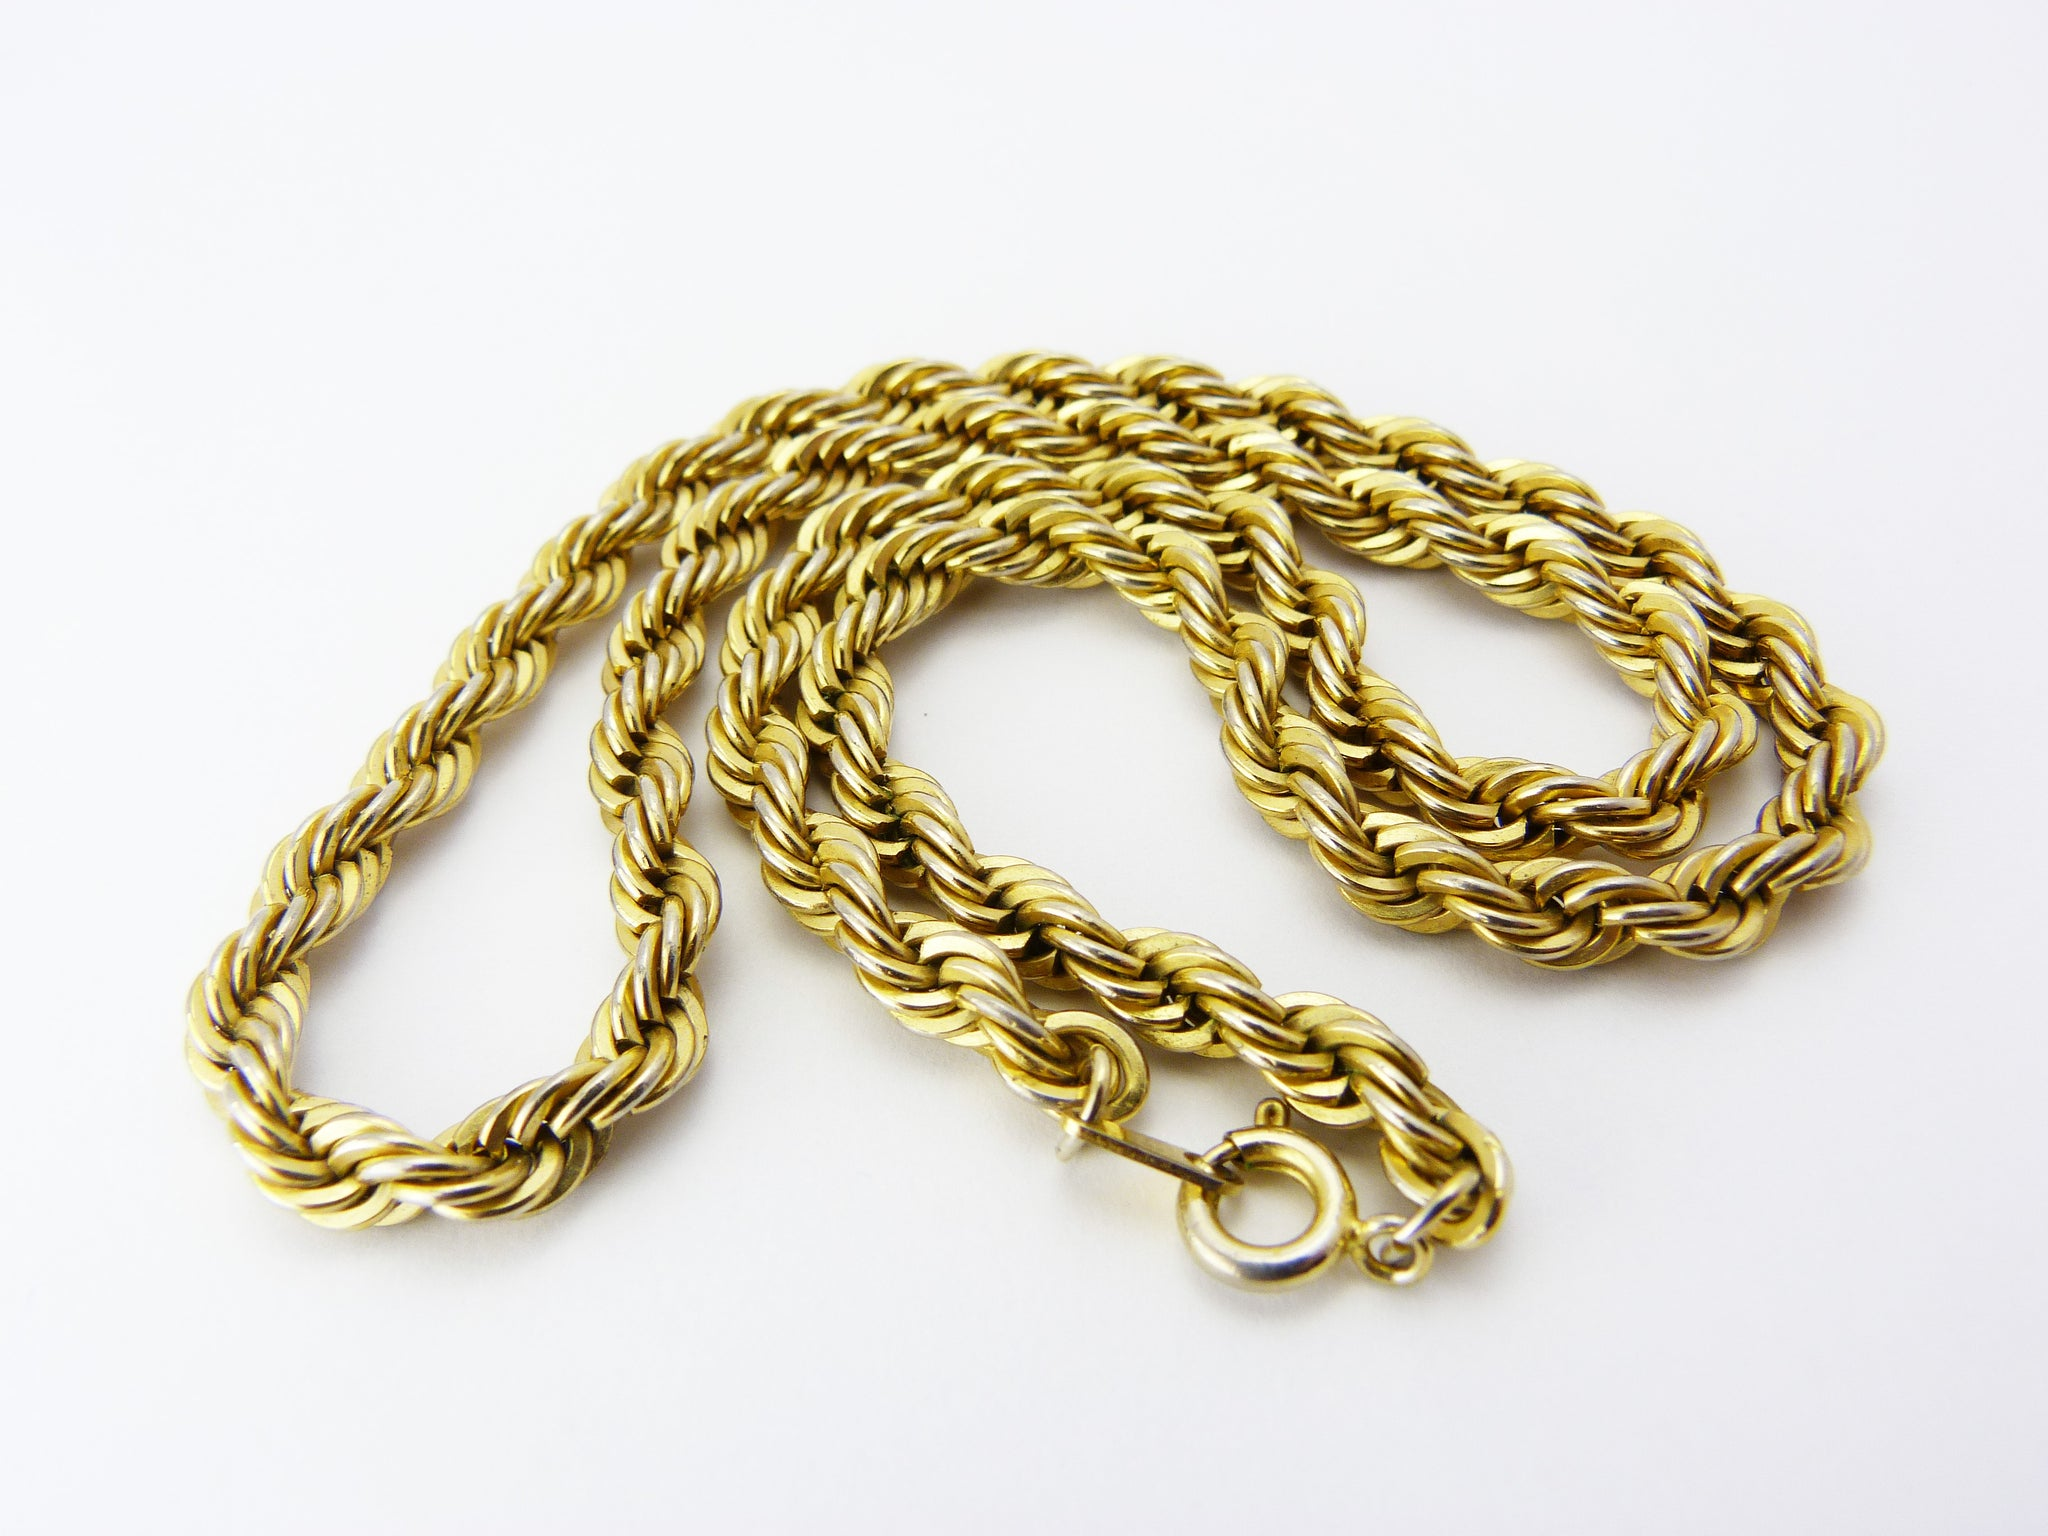 Vintage 1980s Gold Tone Rope Chain Necklace